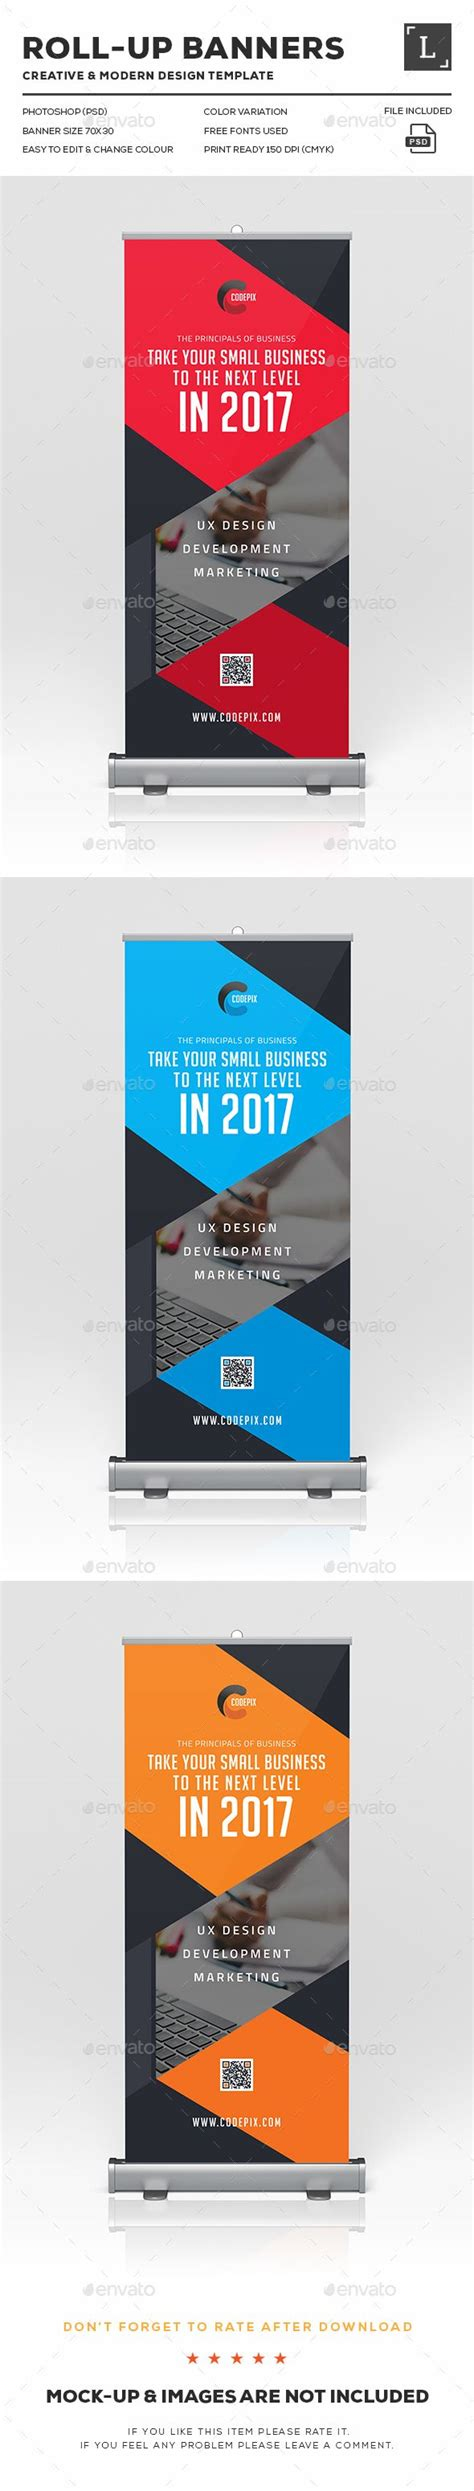 banners design templates corporate roll up banners rollup banner and print templates